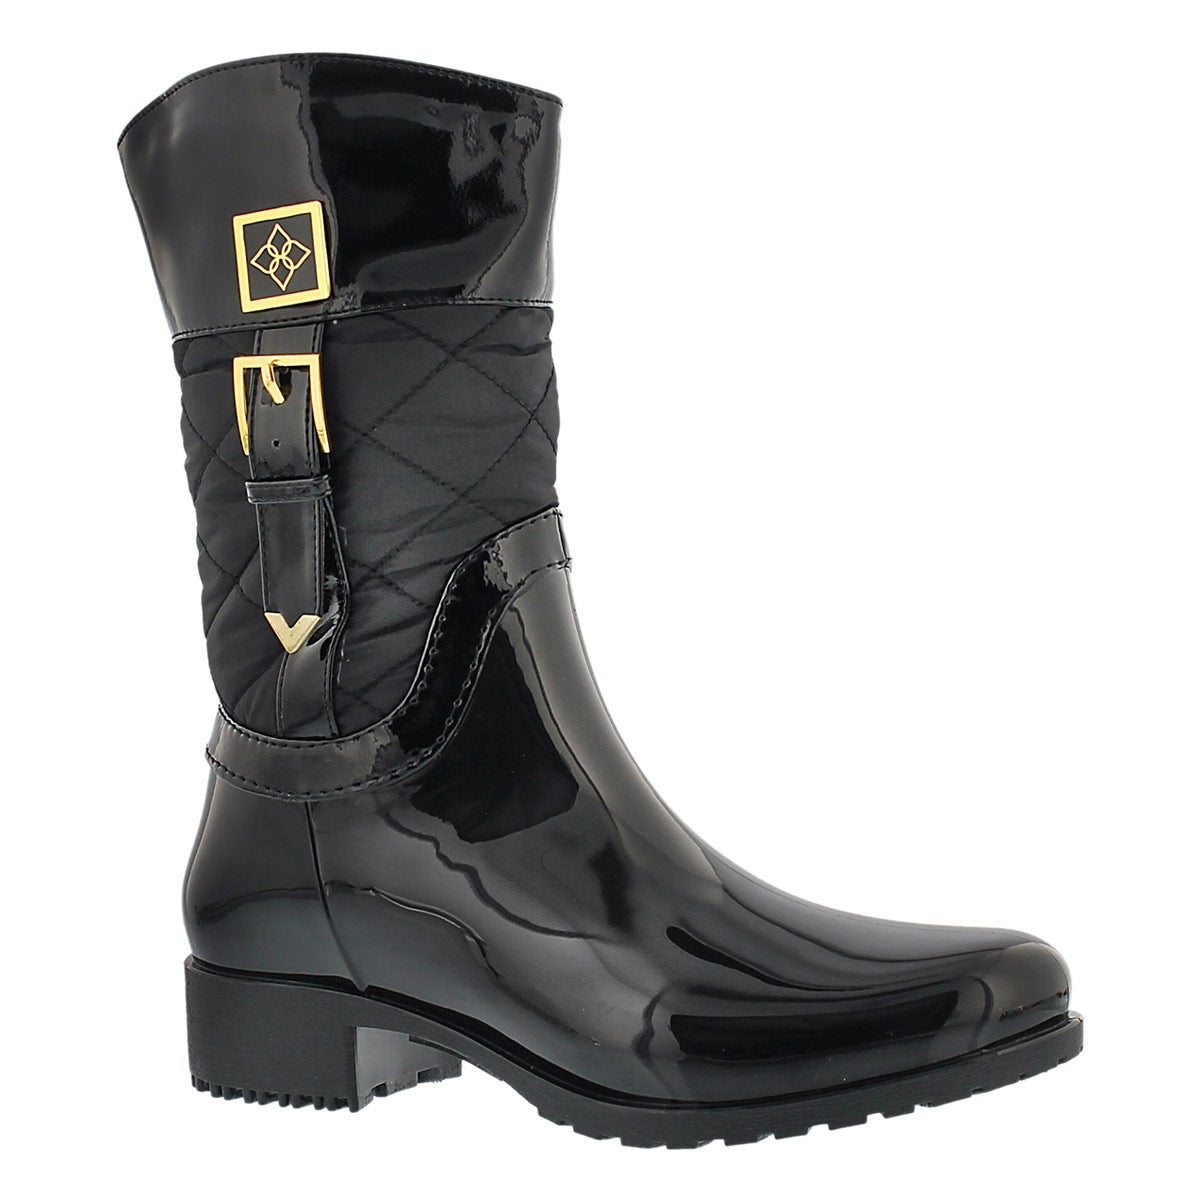 Lds Coventry Quilted Mid black rain boot